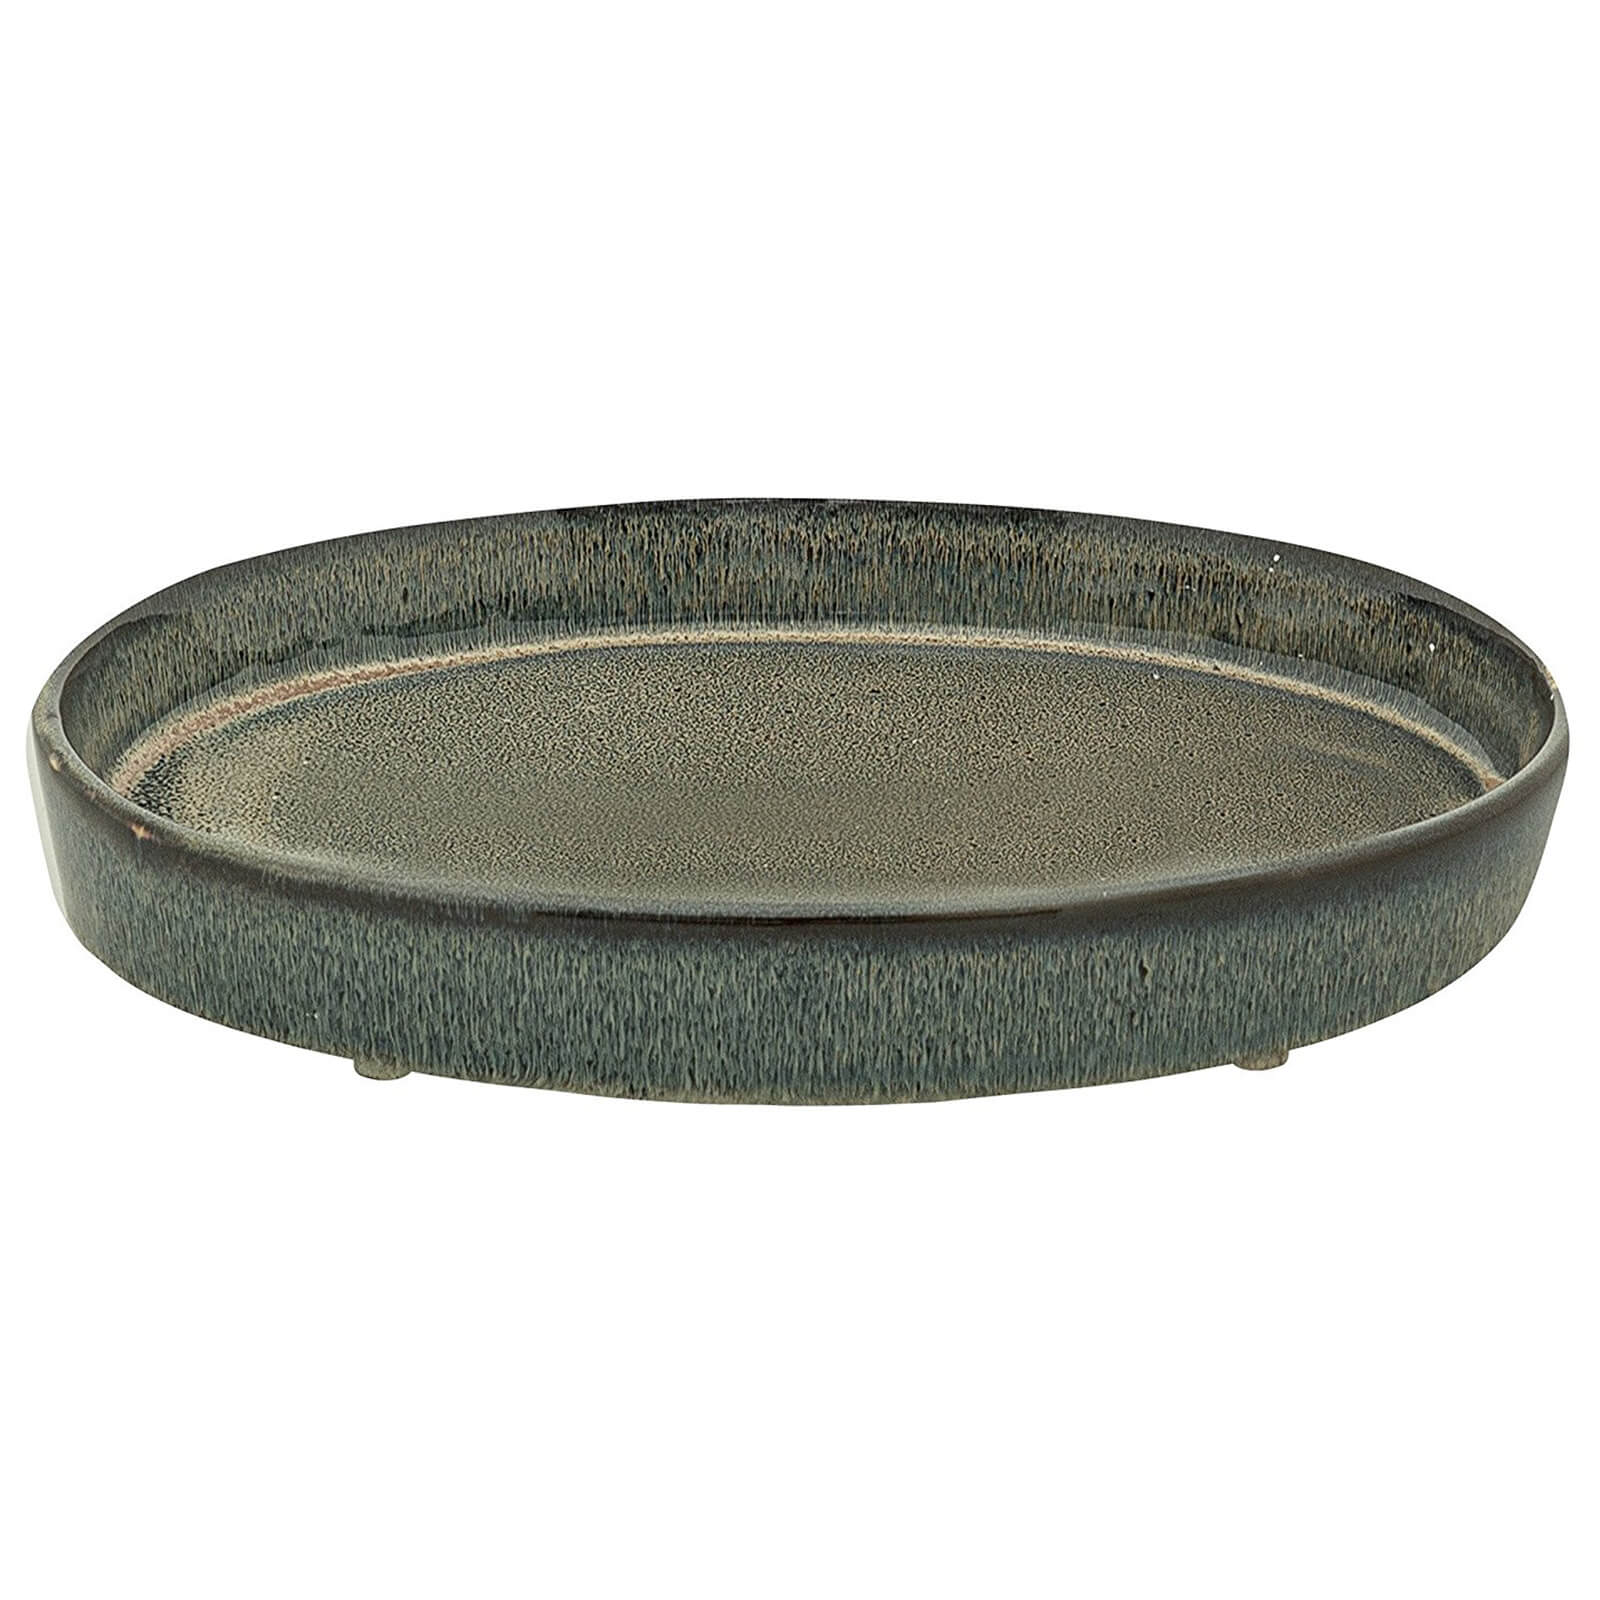 Bloomingville Ceramic Tray - Brown